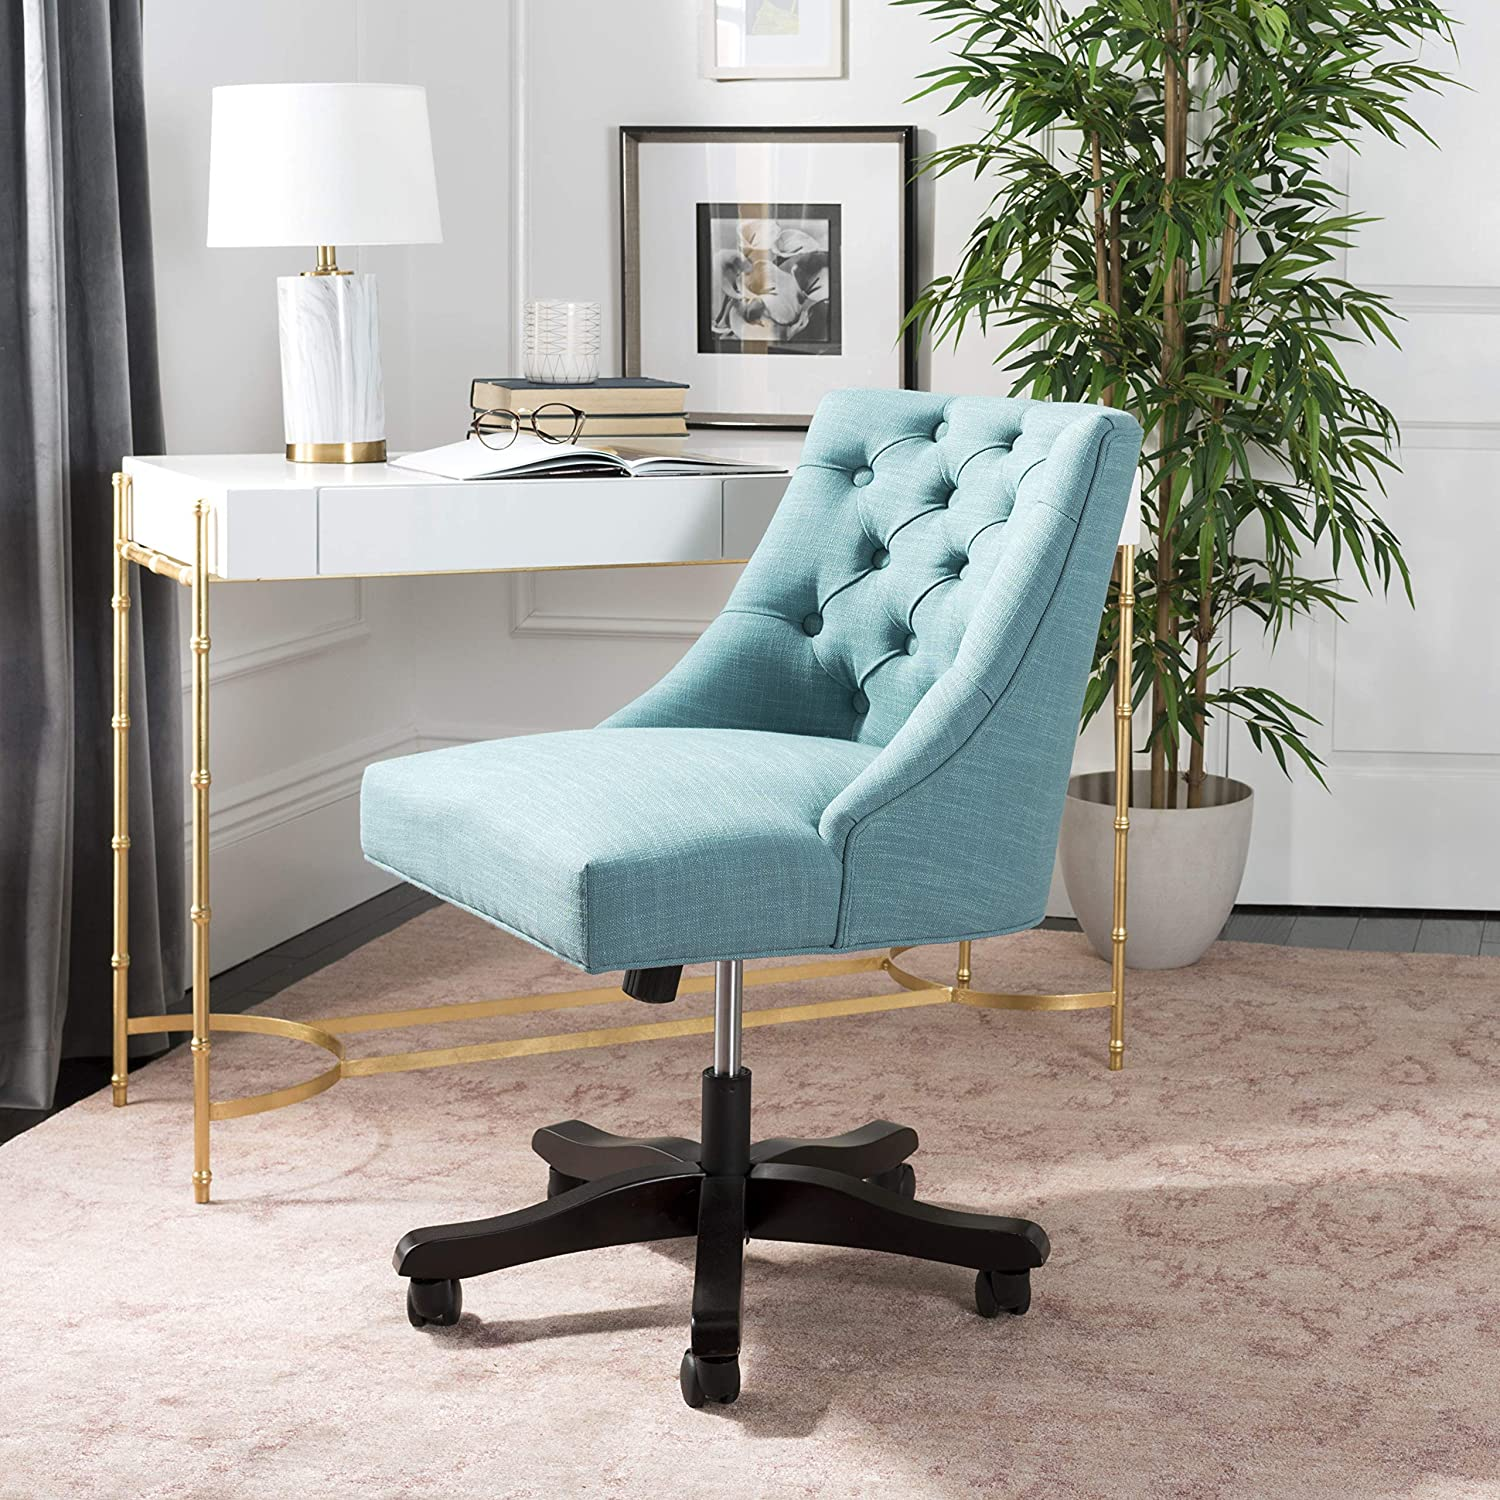 Safavieh Soho Desk Chair, Light Blue, Light Blue